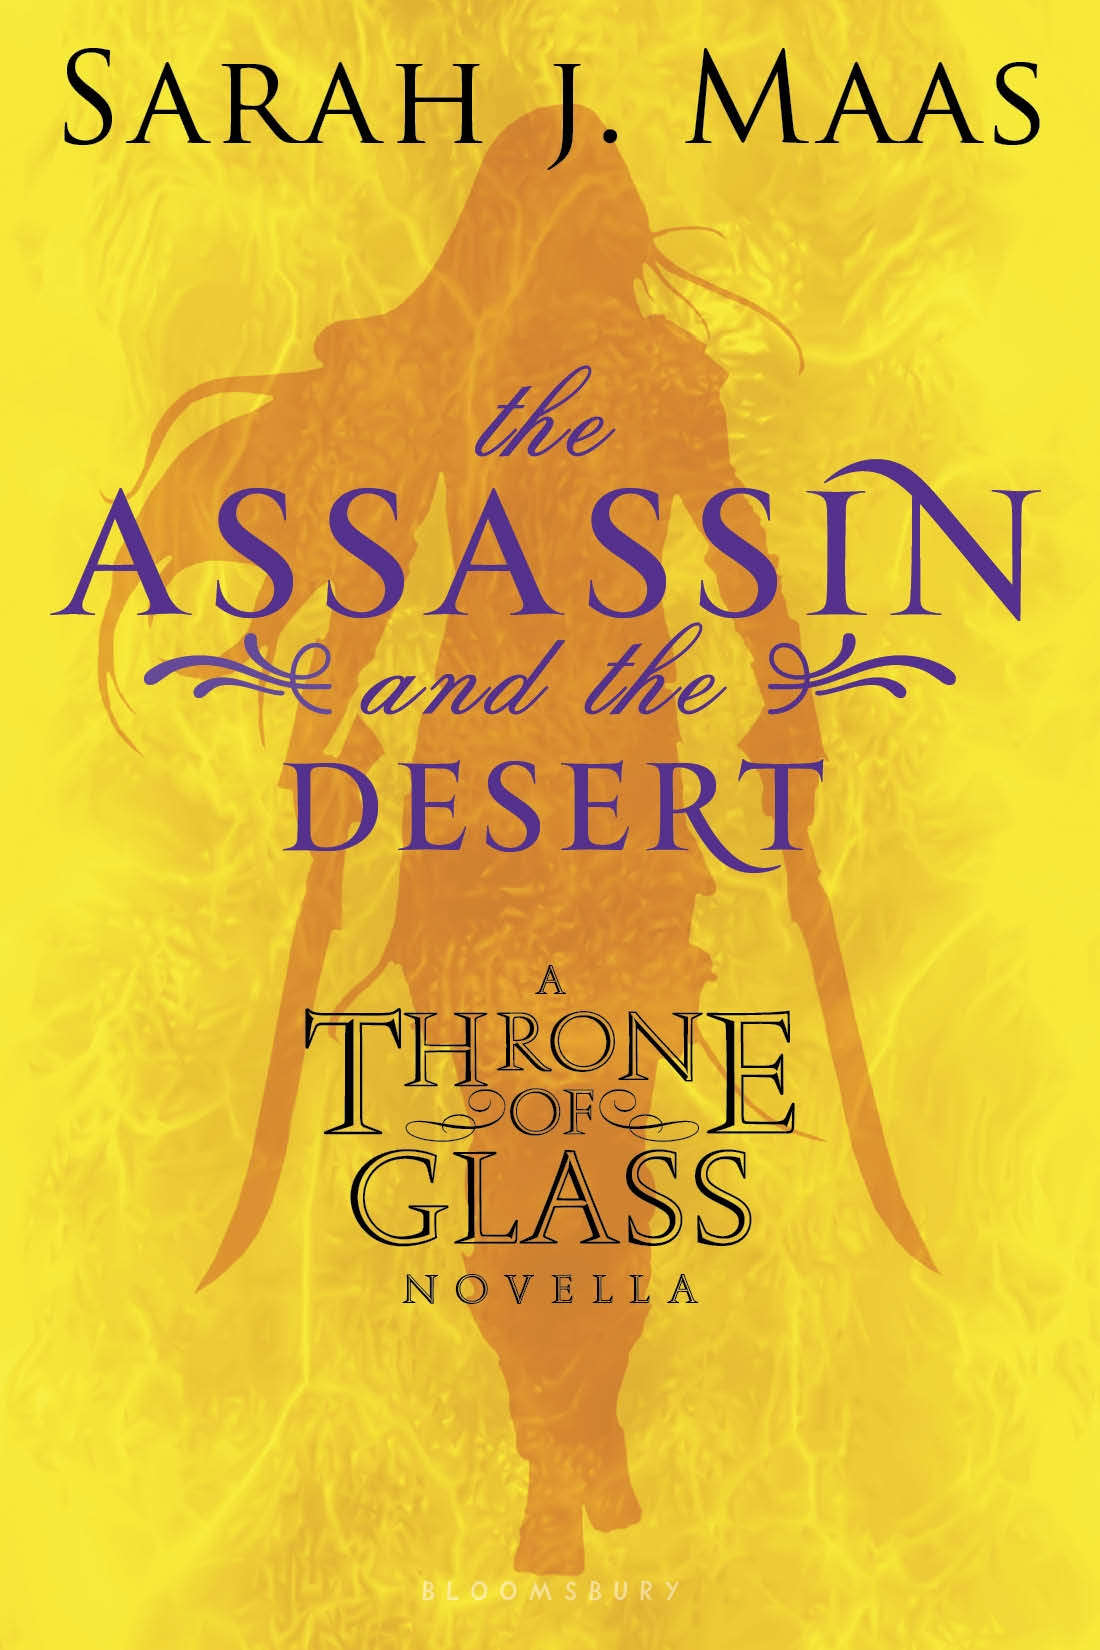 The Assassin and the Desert